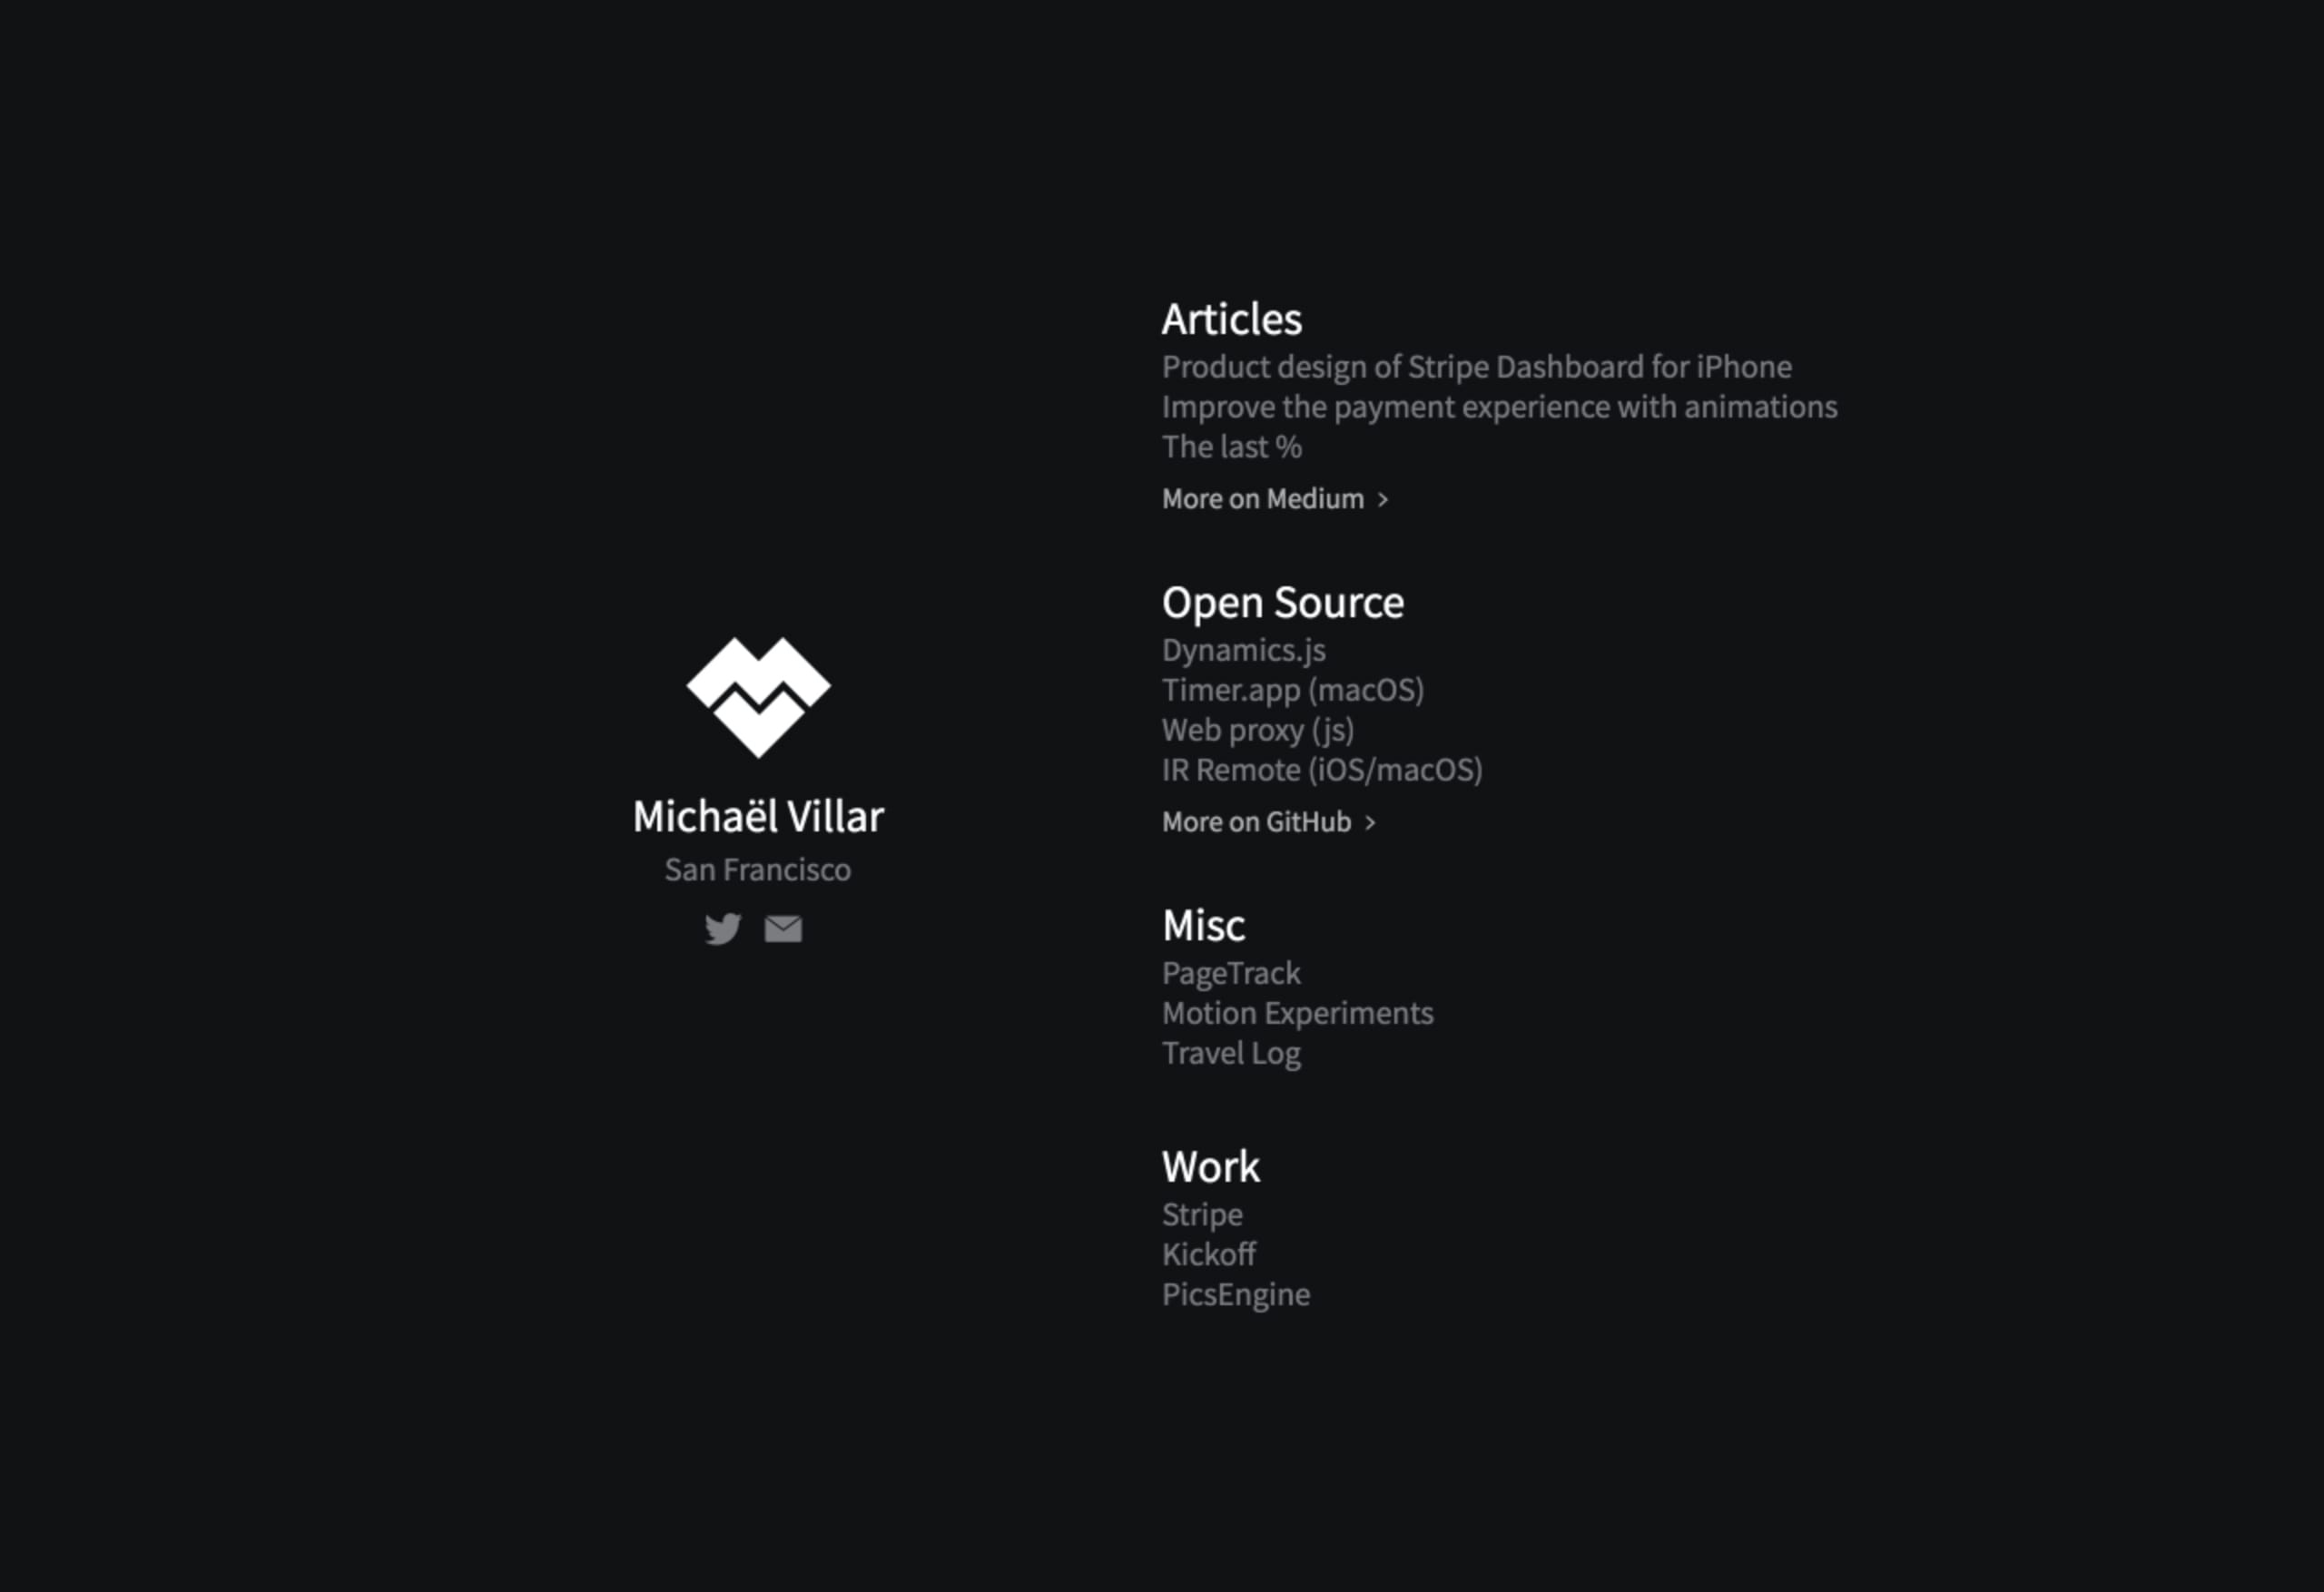 Michaël Villar Website Screenshot